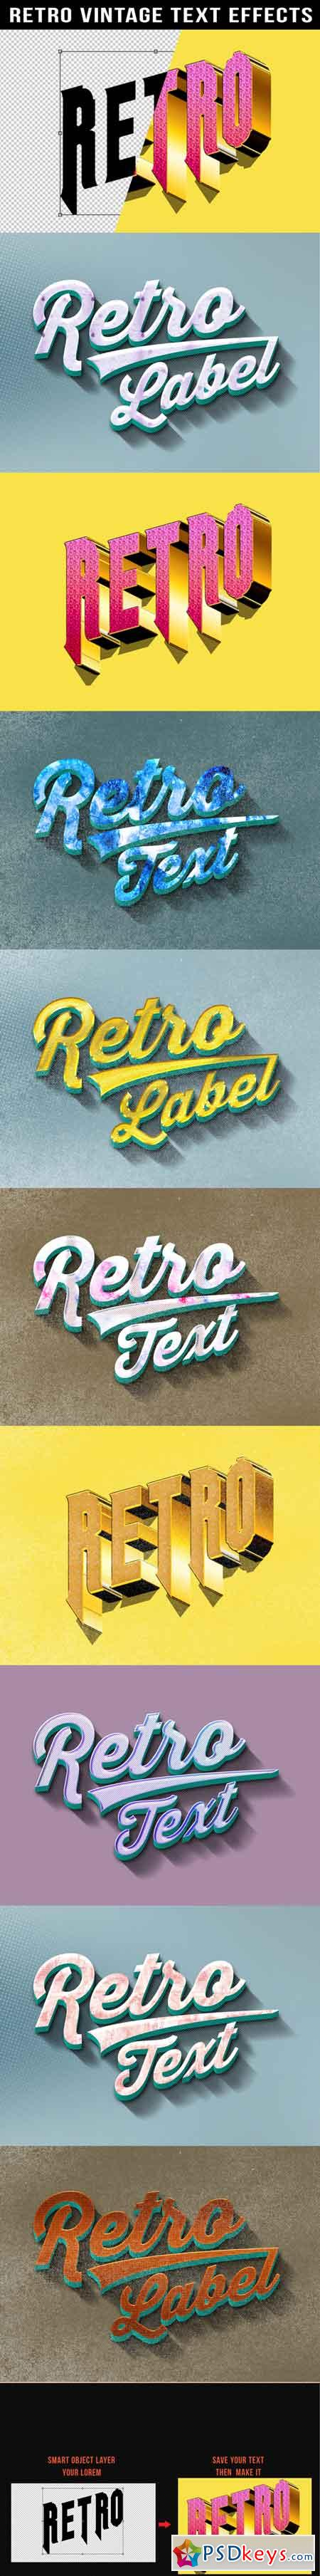 Retro Vintage Text Effects 20087801